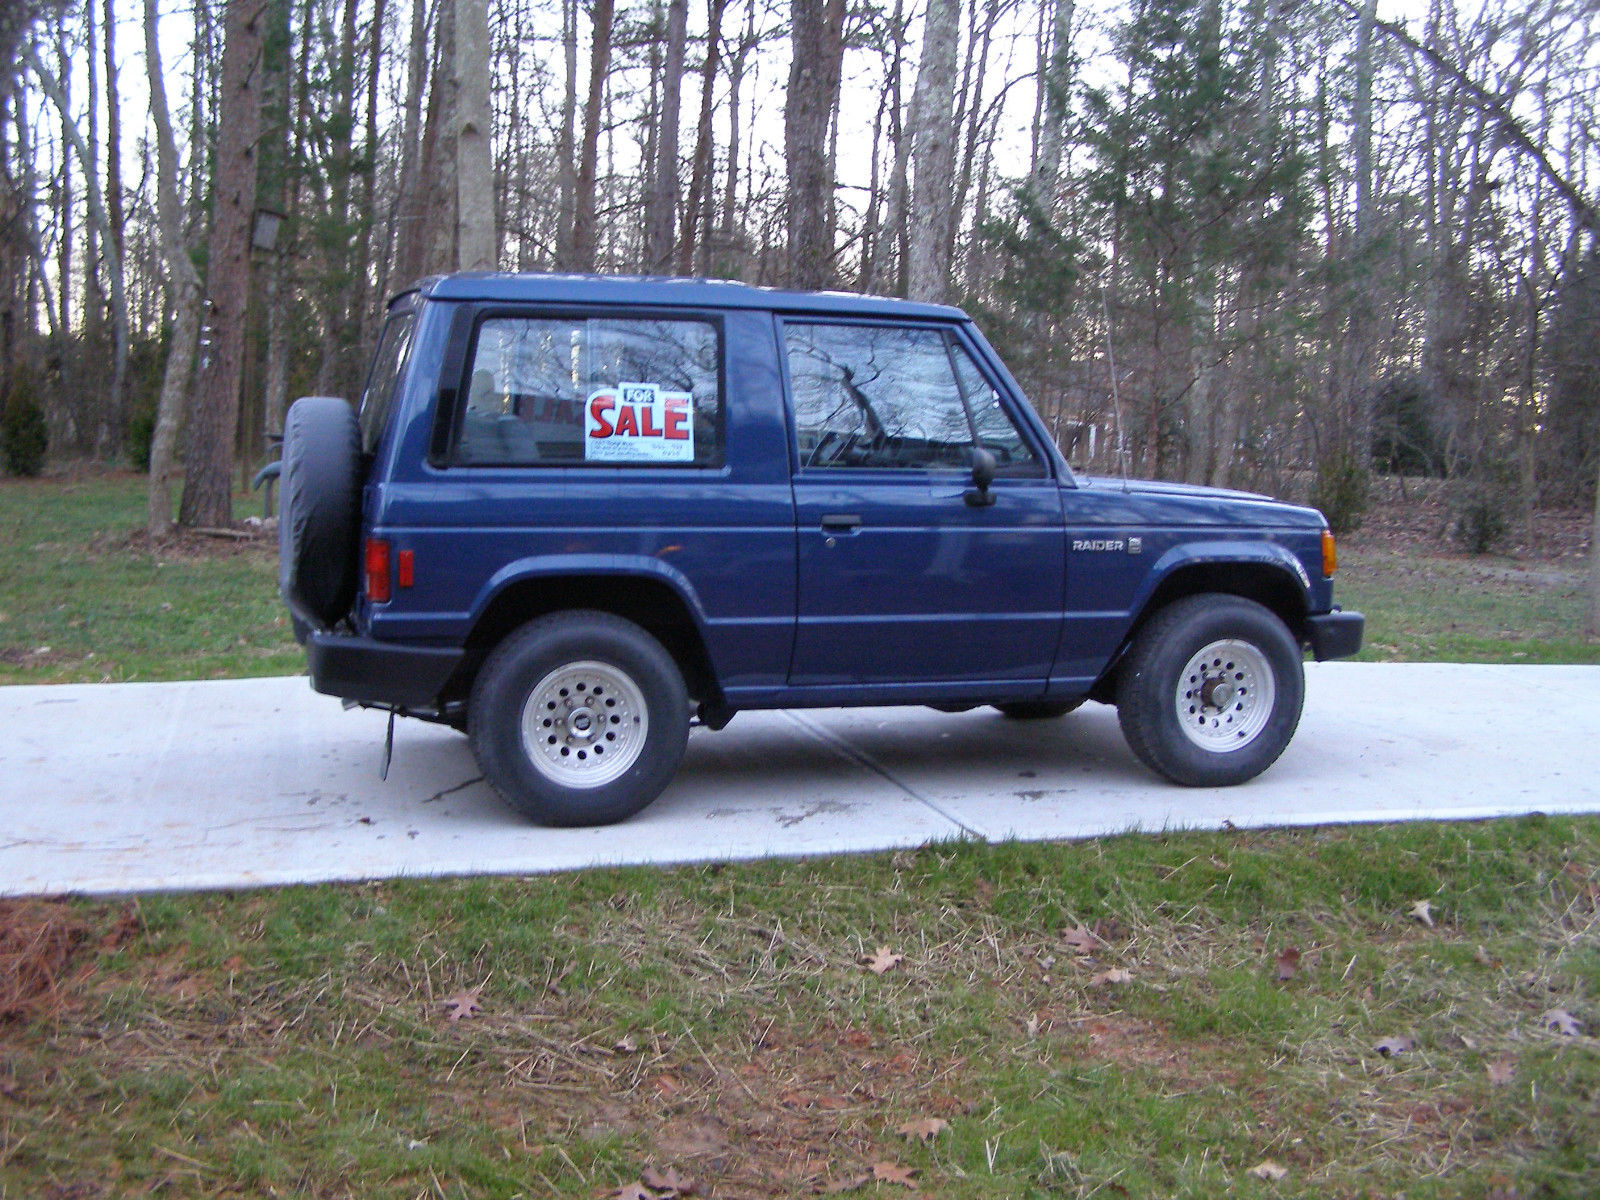 Dodge Raider For Sale >> 1987 Dodge Raider 2 6l For Sale In Greensboro North Carolina